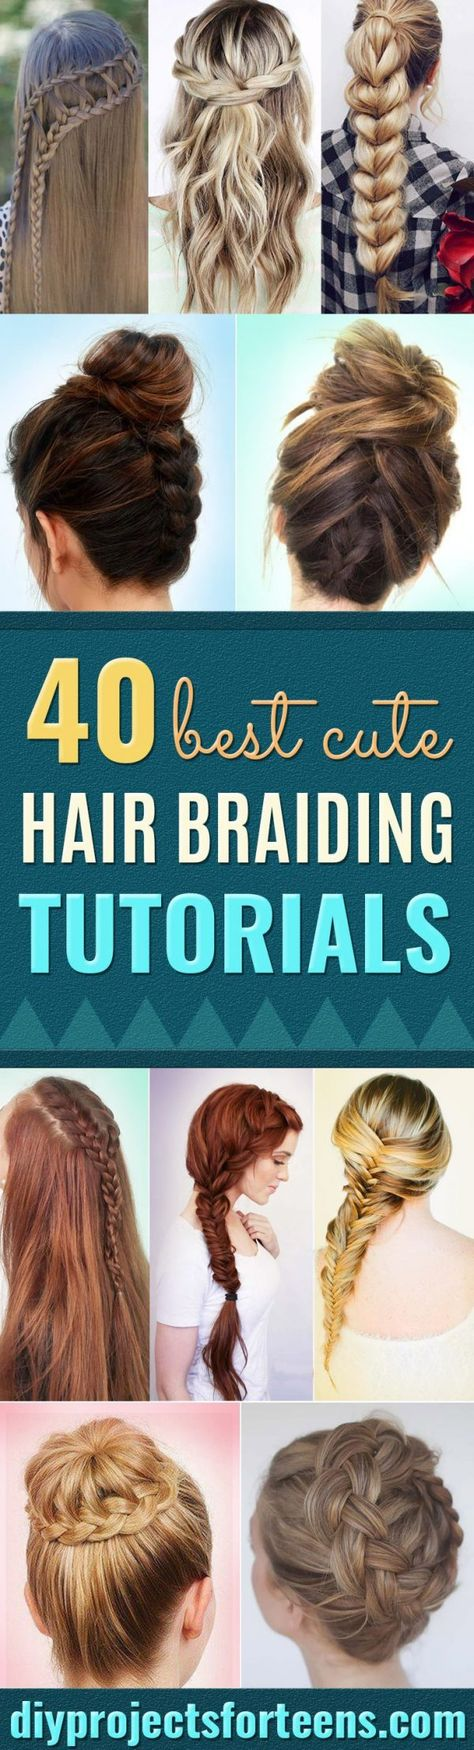 cute hair braiding tutorials step by step #hairstyles